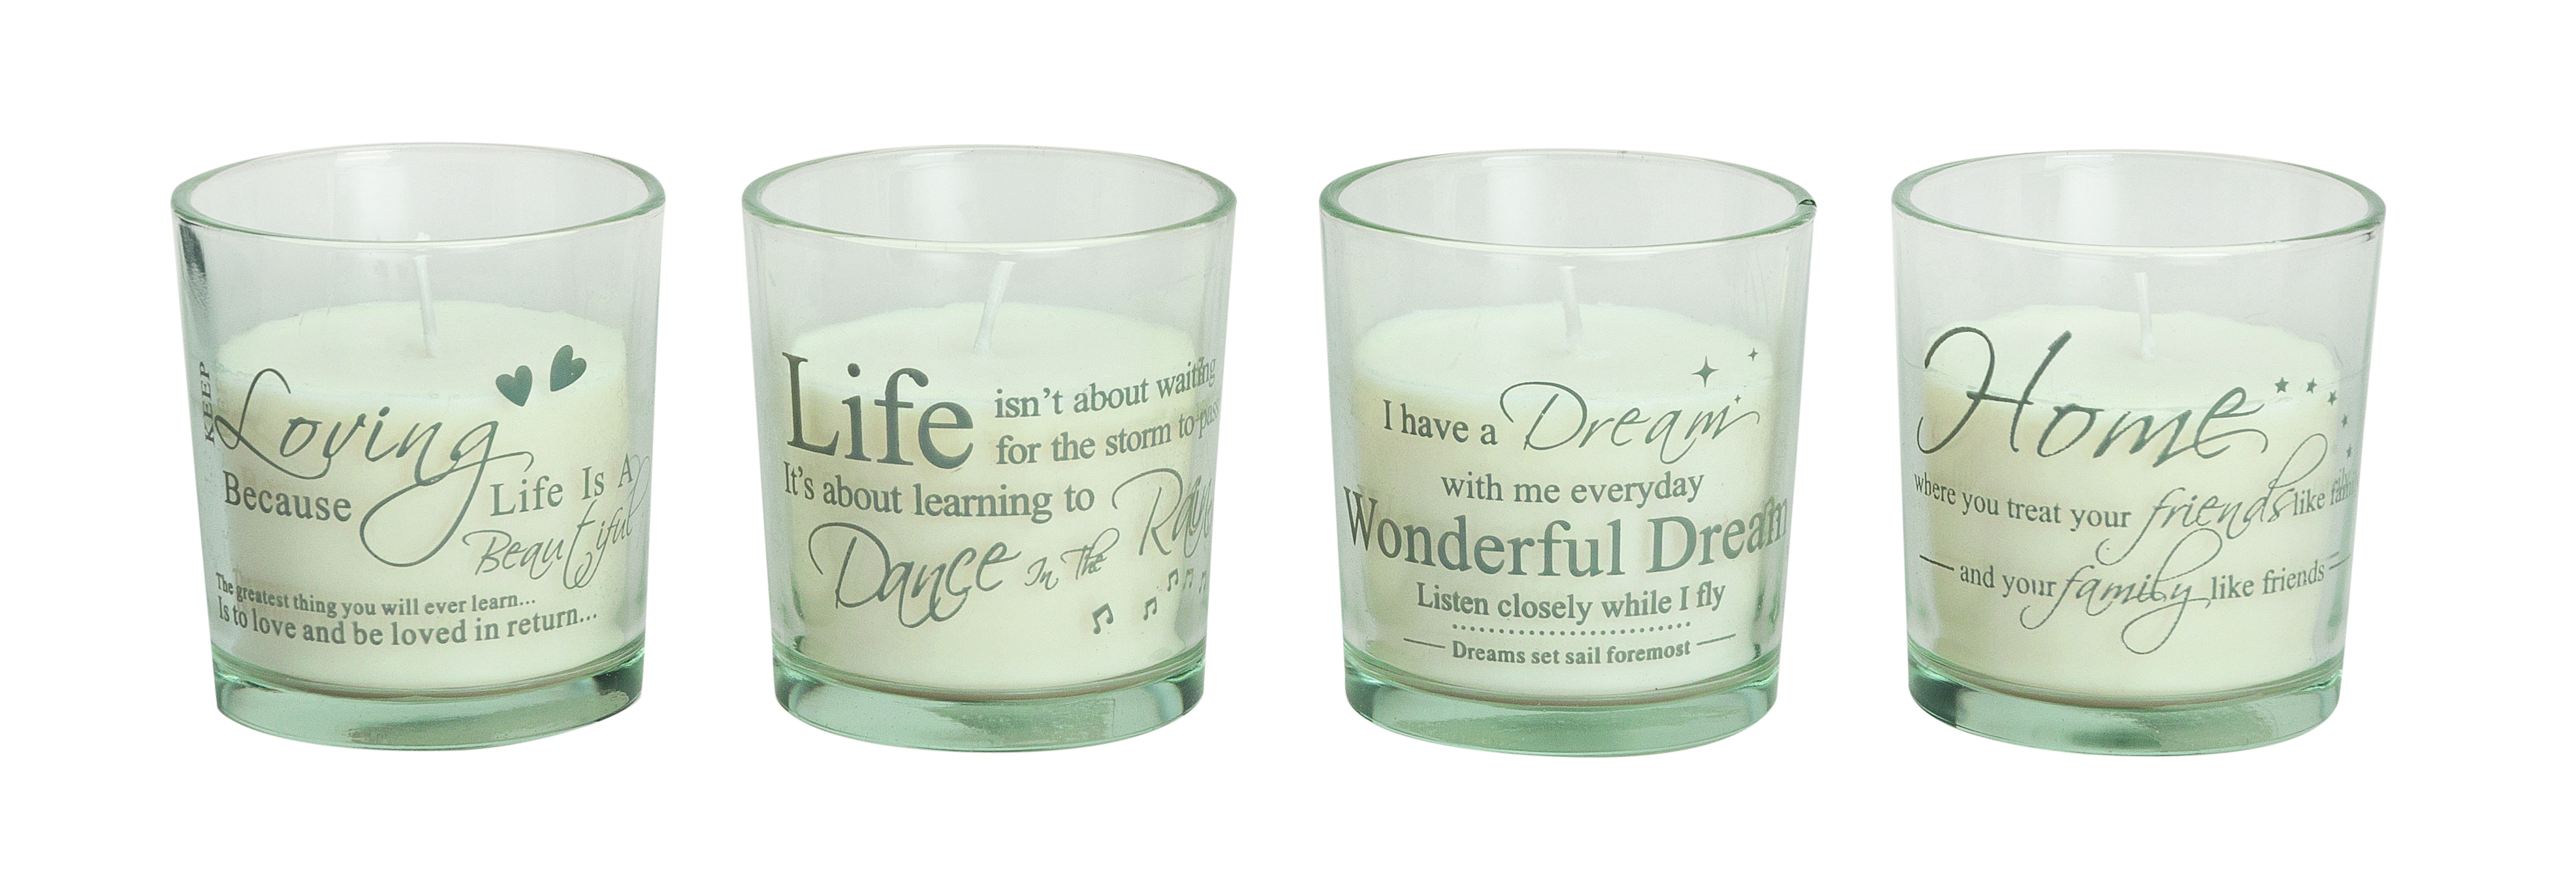 Ongebruikt Windlicht Set Home Dream Love Life › Mr & Mrs Lifestyle | Blog und FM-19